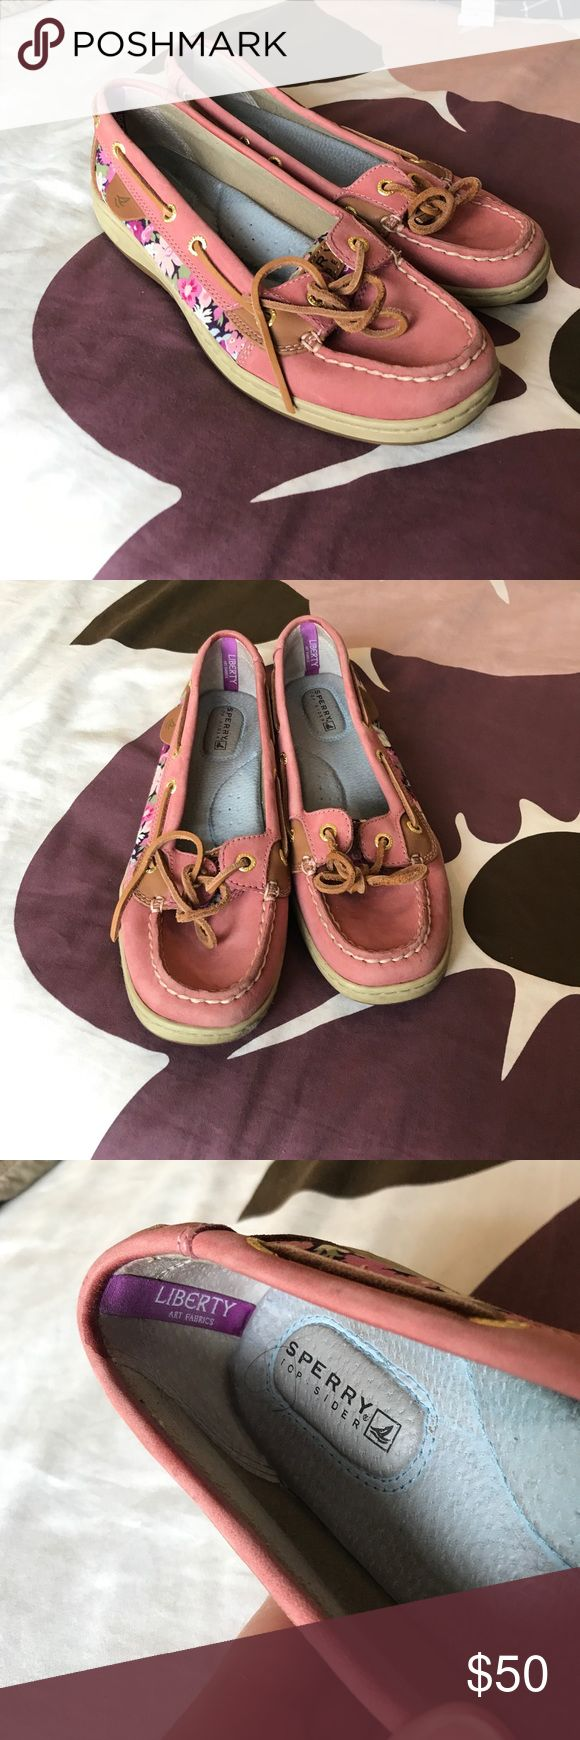 *️⃣*️⃣*️⃣ SPERRY Cute pink sperry boat shoes. Very gently used Sperry Top-Sider Shoes Espadrilles